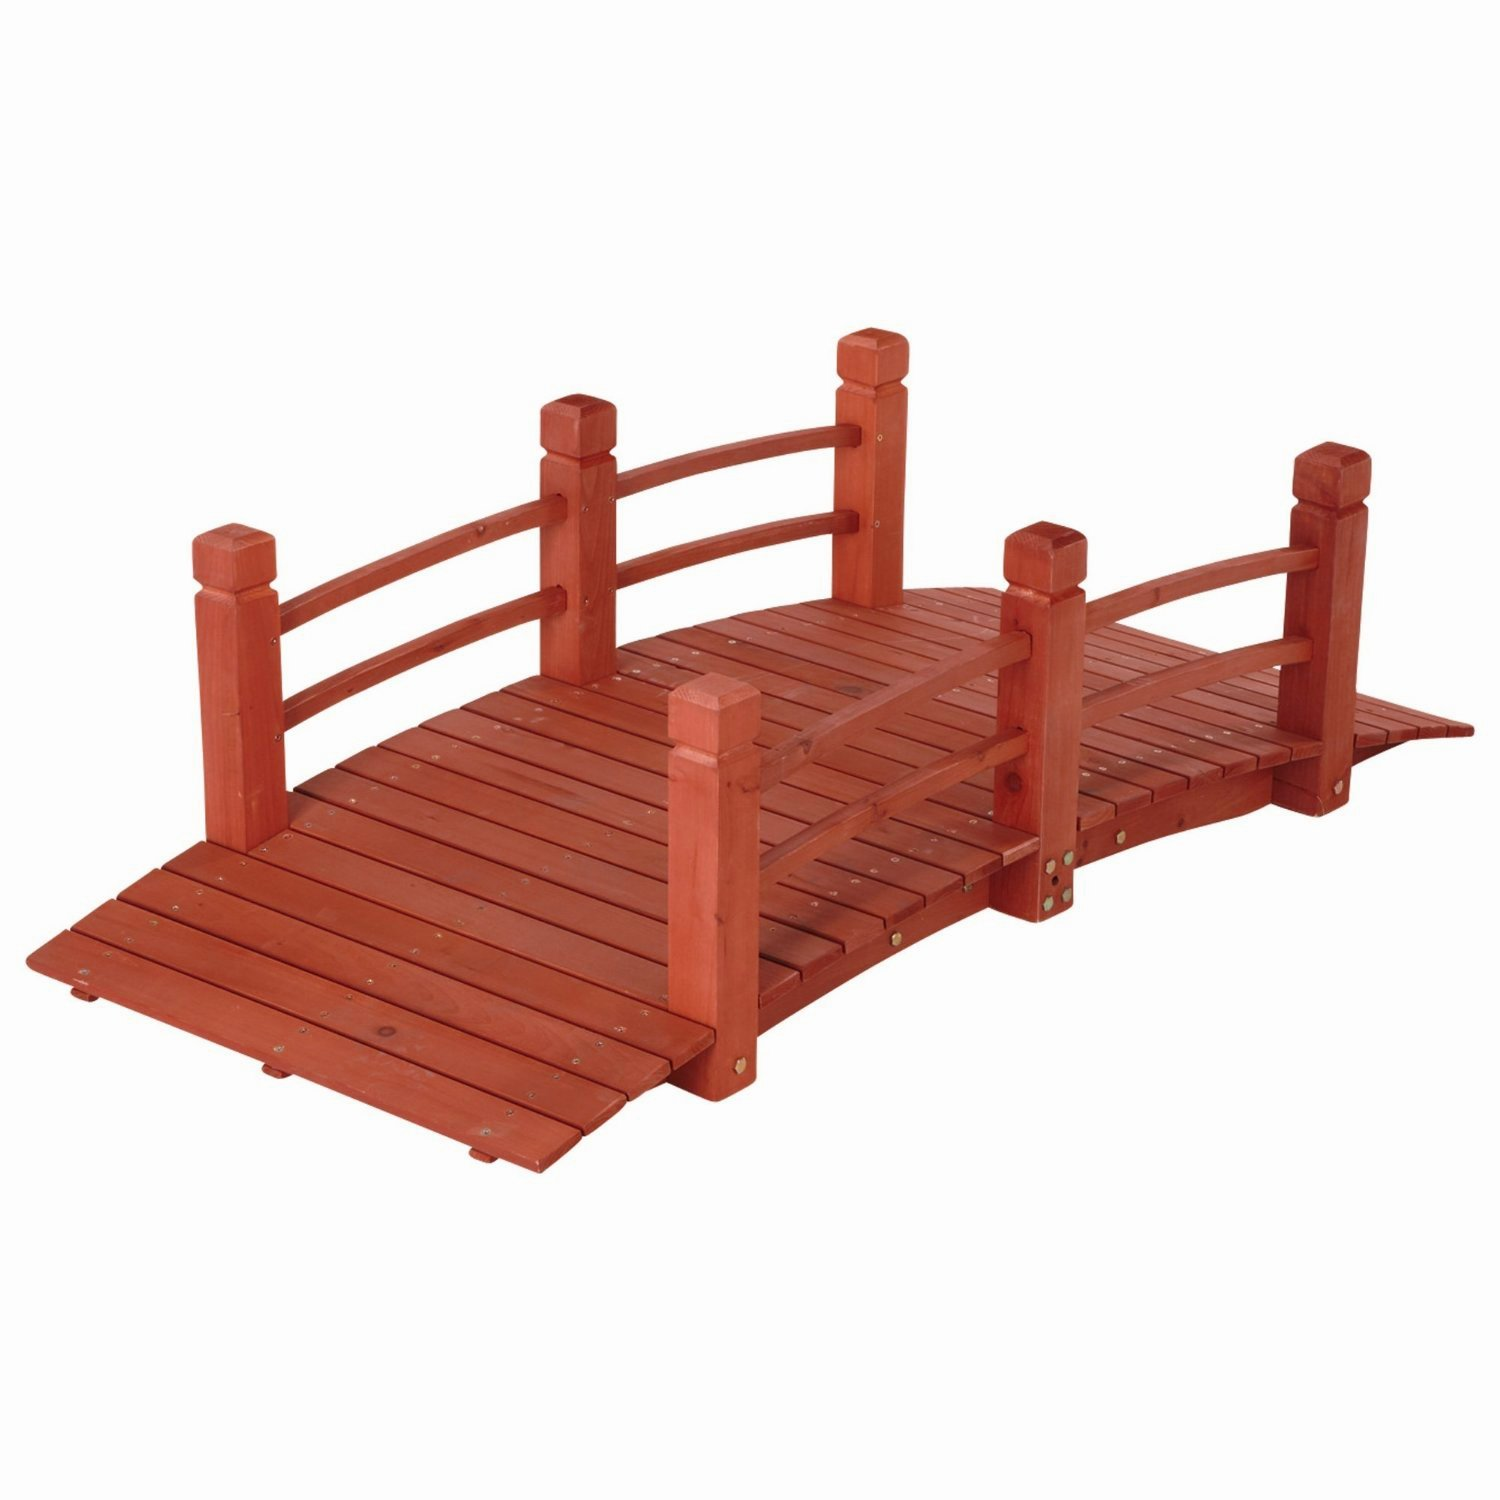 5 ft (59 in) Wooden Garden Bridge / Garden Stream Yard Walkway w/ Double Rails Product SKU: GD04211 by PierSurplus